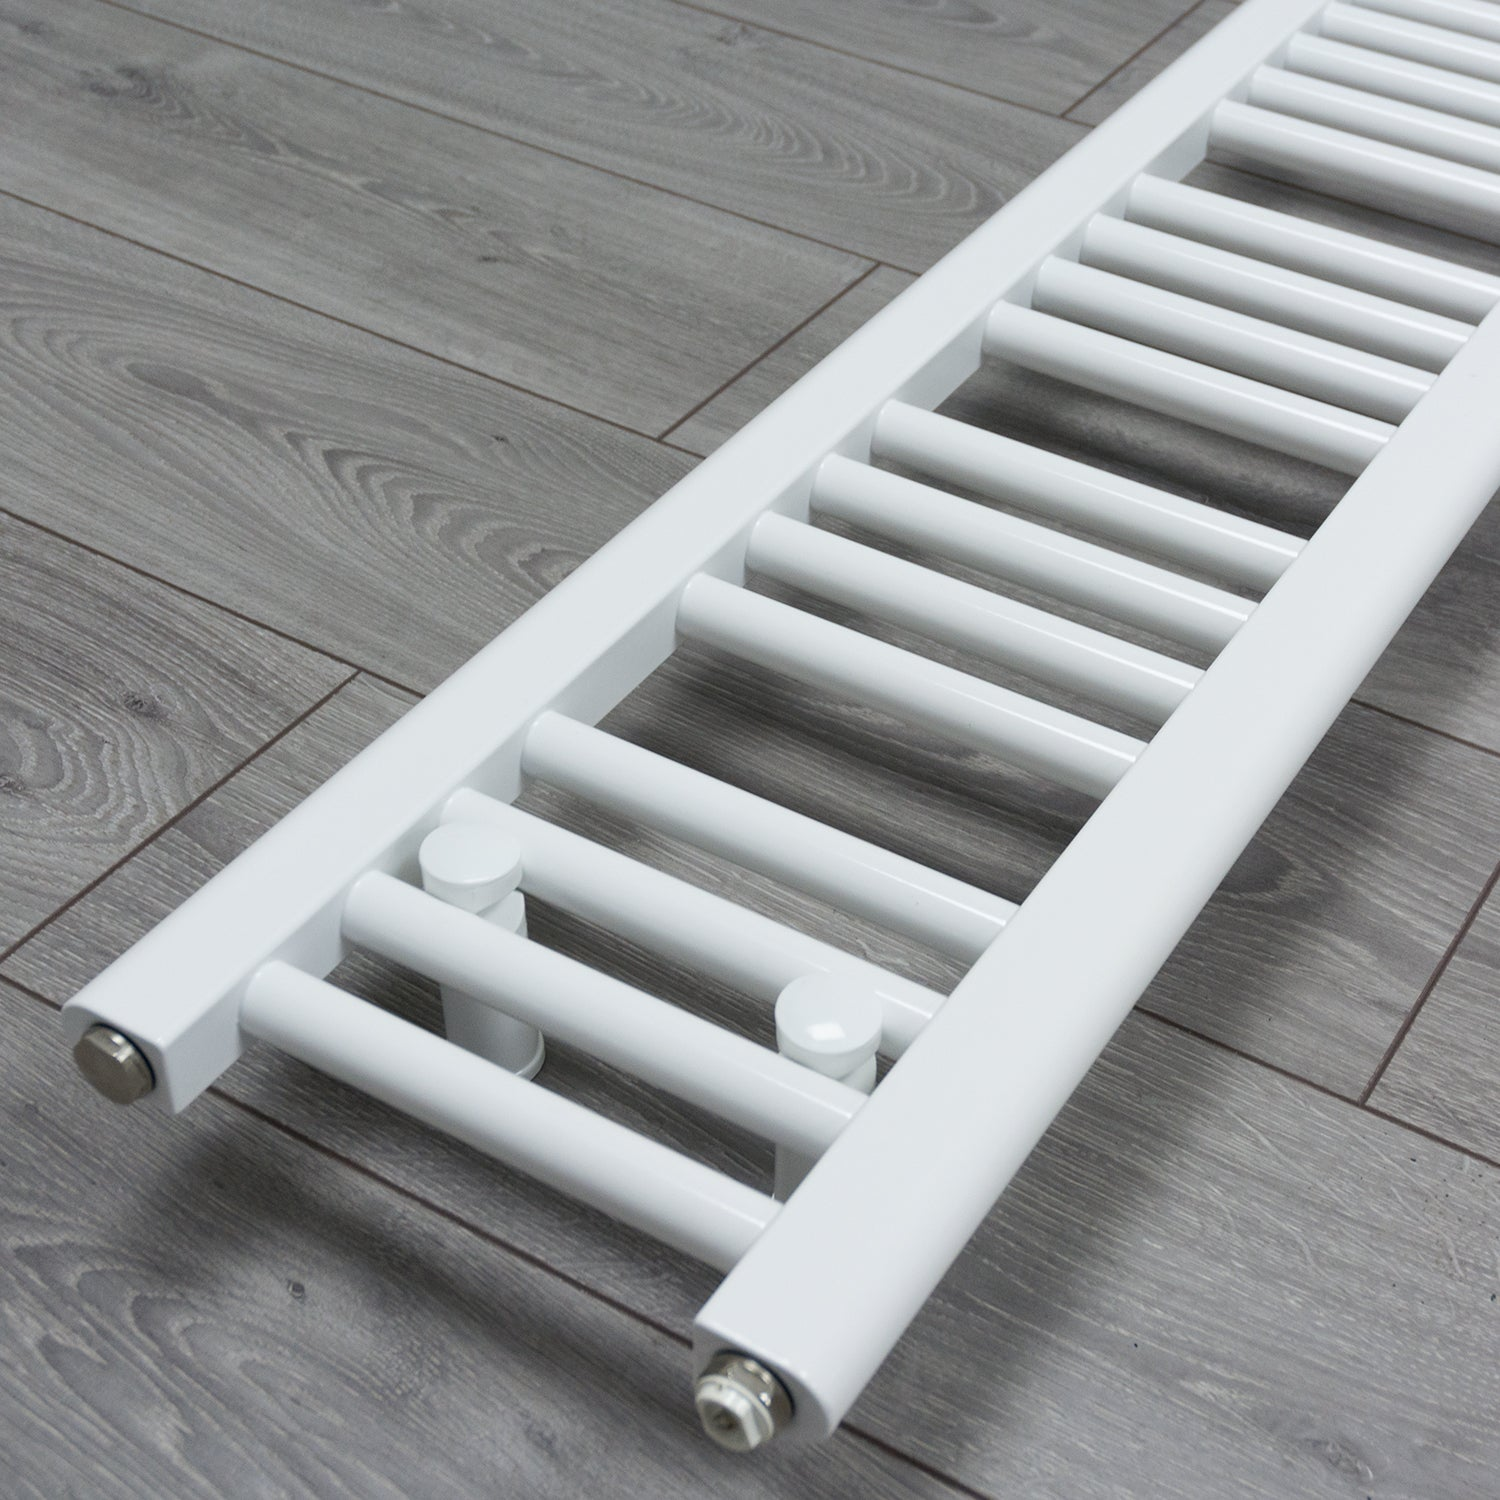 250mm x 600mm White Heated Towel Rail Radiator Close Up Image